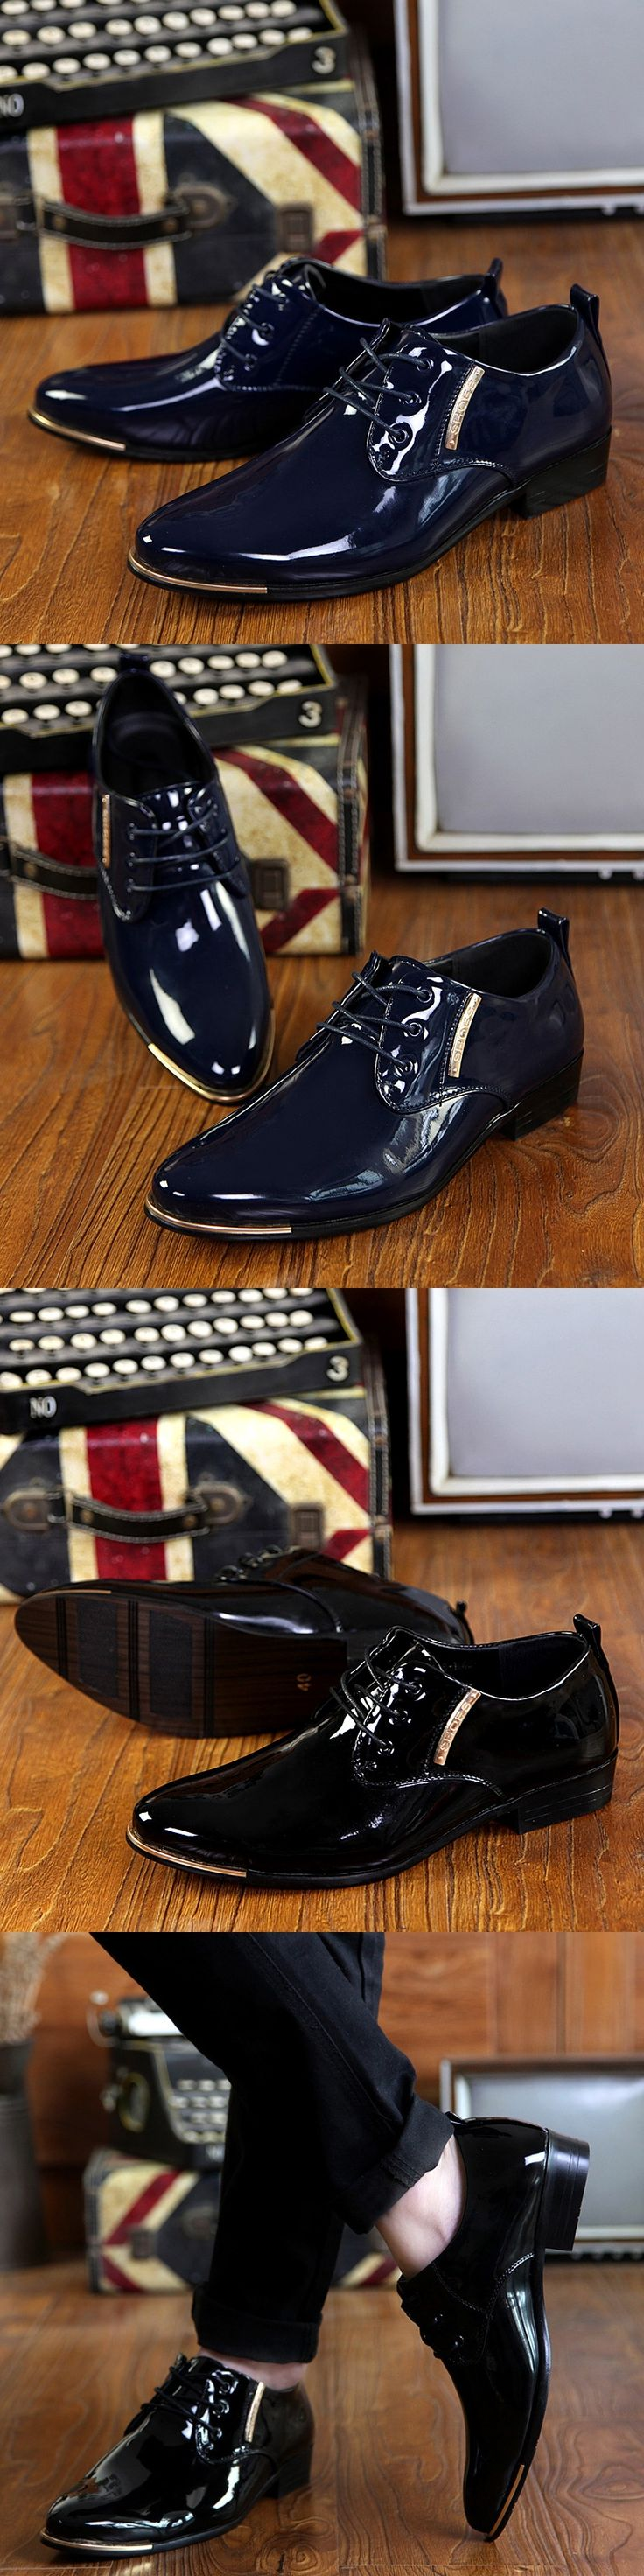 US $22 Luxury Brand British Style High Quality Carved Patent Leather Flat Lace-Up Big Size Oxford Men Wedding Shoes Black Purple